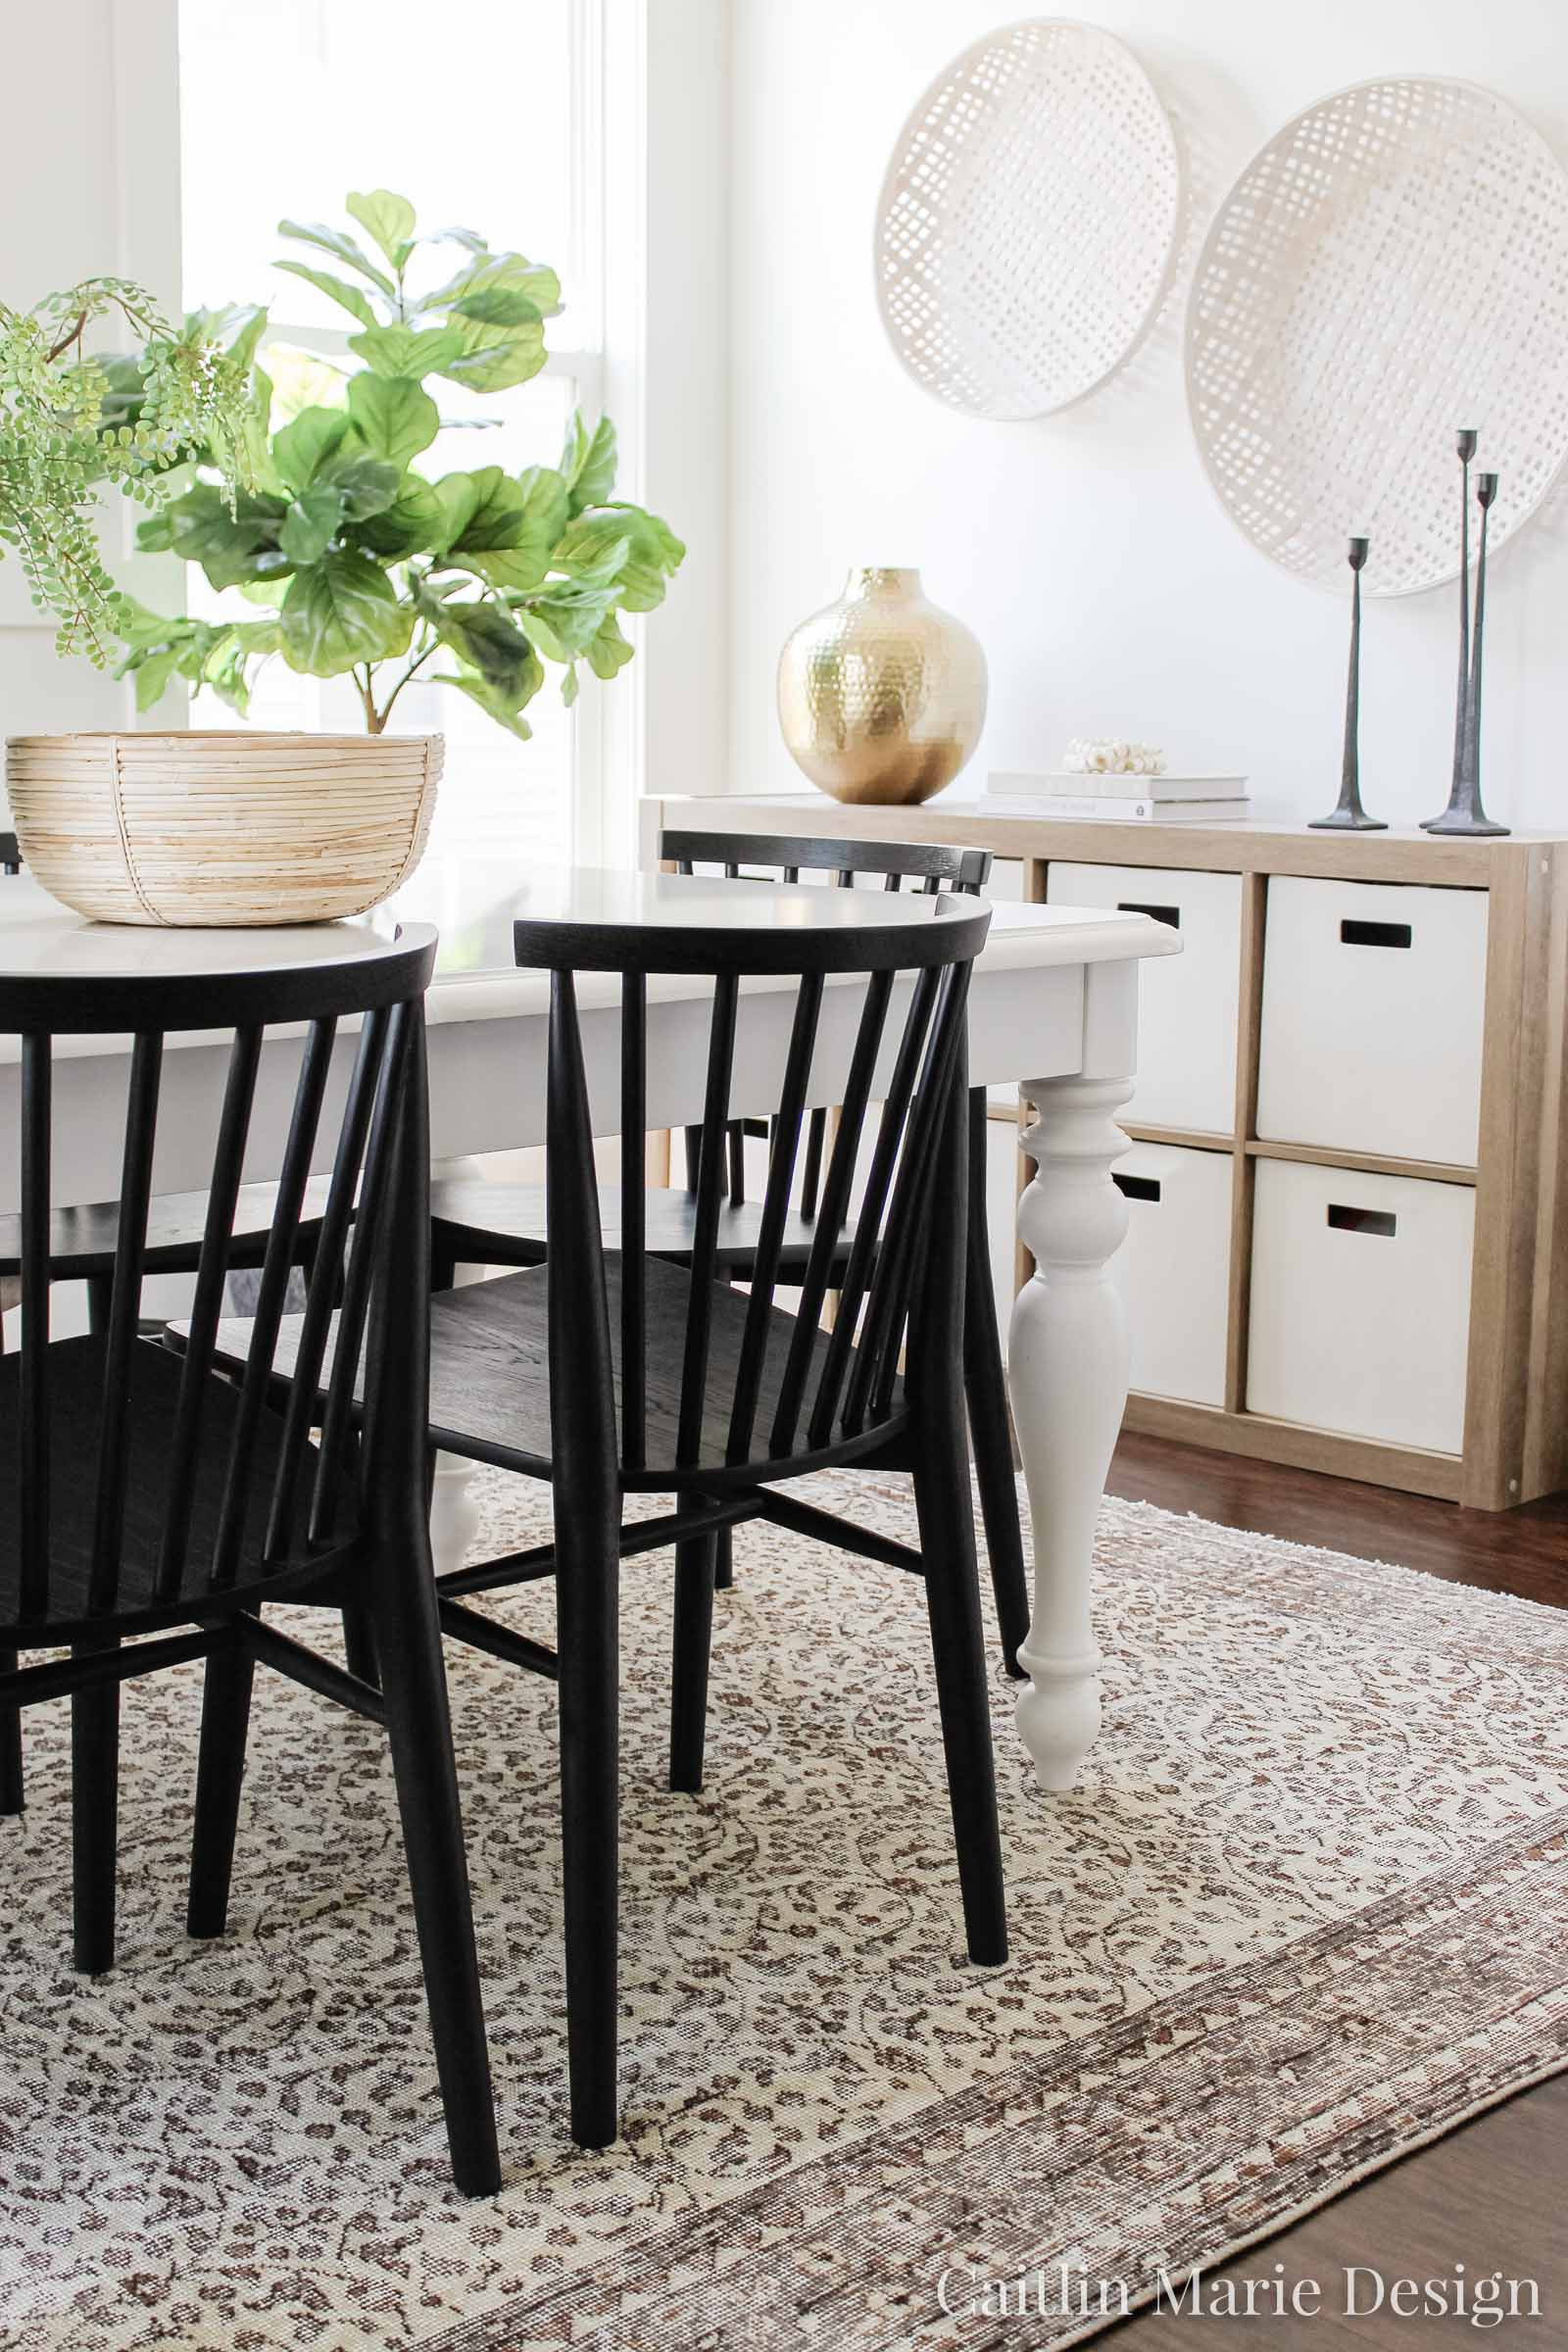 Picture of: Modern Dining Chairs From Article Caitlin Marie Design